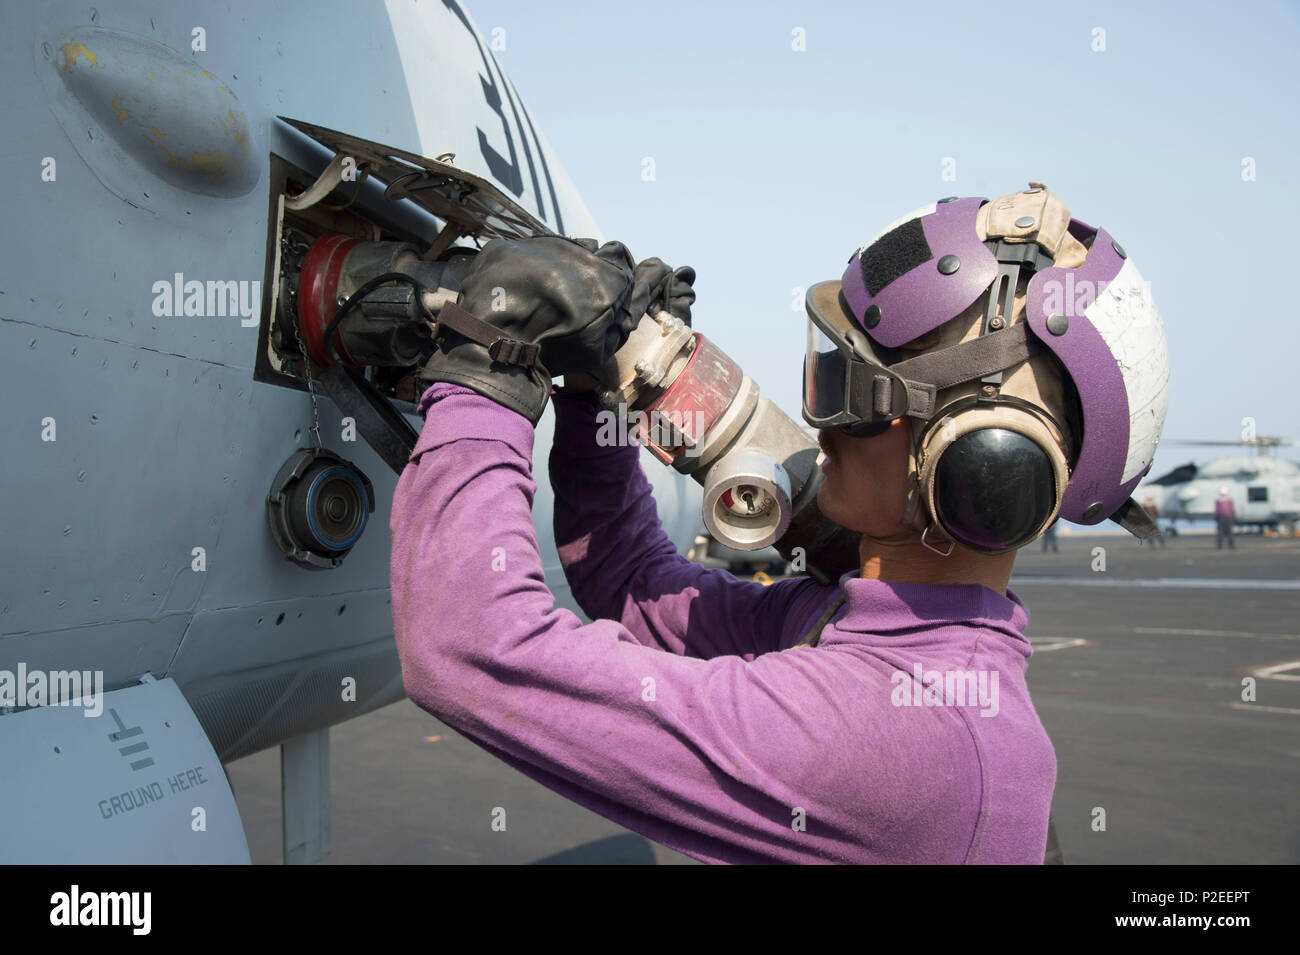 160913-N-CZ759-014    ARABIAN GULF (Sept. 13, 2016) Aviation Boatswain's Mate (Fuels) Airman Blane Davidson, from Orlando, Fla., refuels an F/A-18C Hornet assigned to the Wildcats of Strike Fighter Squadron (VFA) 131 on the flight deck of the aircraft carrier USS Dwight D. Eisenhower (CVN 69) (Ike). Ike and its Carrier Strike Group are deployed in support of Operation Inherent Resolve, maritime security operations and theater security cooperation efforts in the U.S. 5th Fleet area of operations. (U.S. Navy photo by Mass Communication Specialist 3rd Class Theodore Quintana) - Stock Image